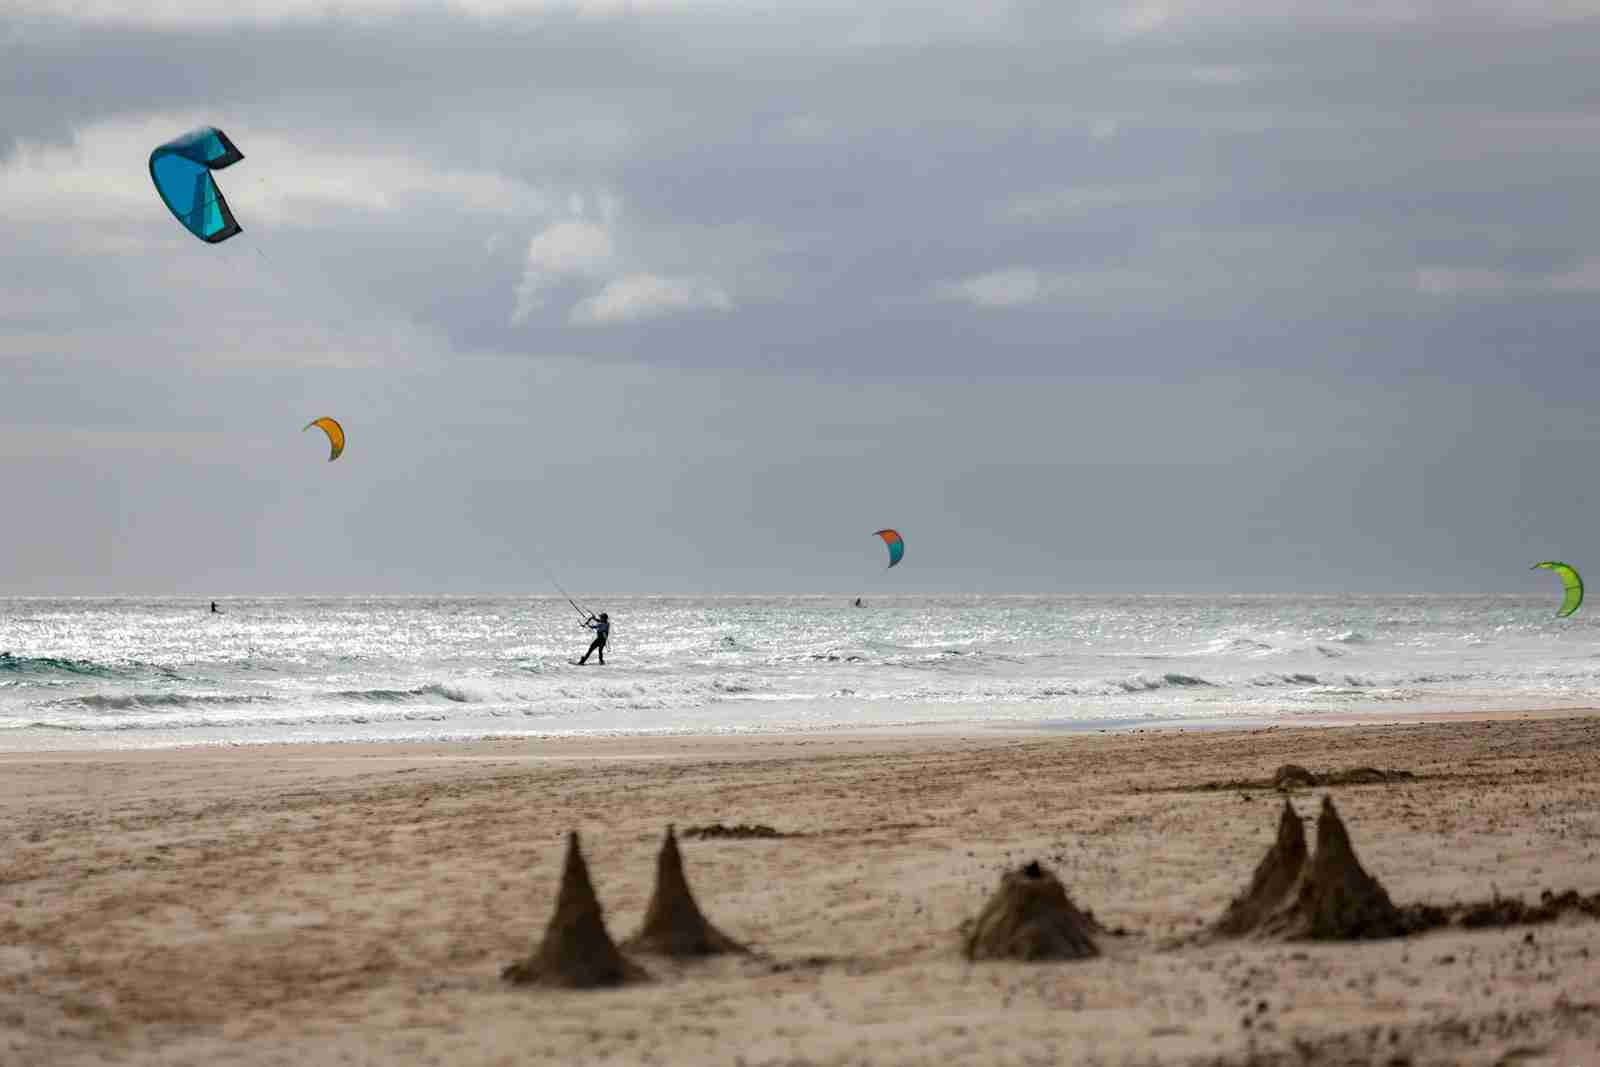 Kiteboarding at Costa Calma in Fuerteventura. (Photo by Brand X Pictures / Getty Images)